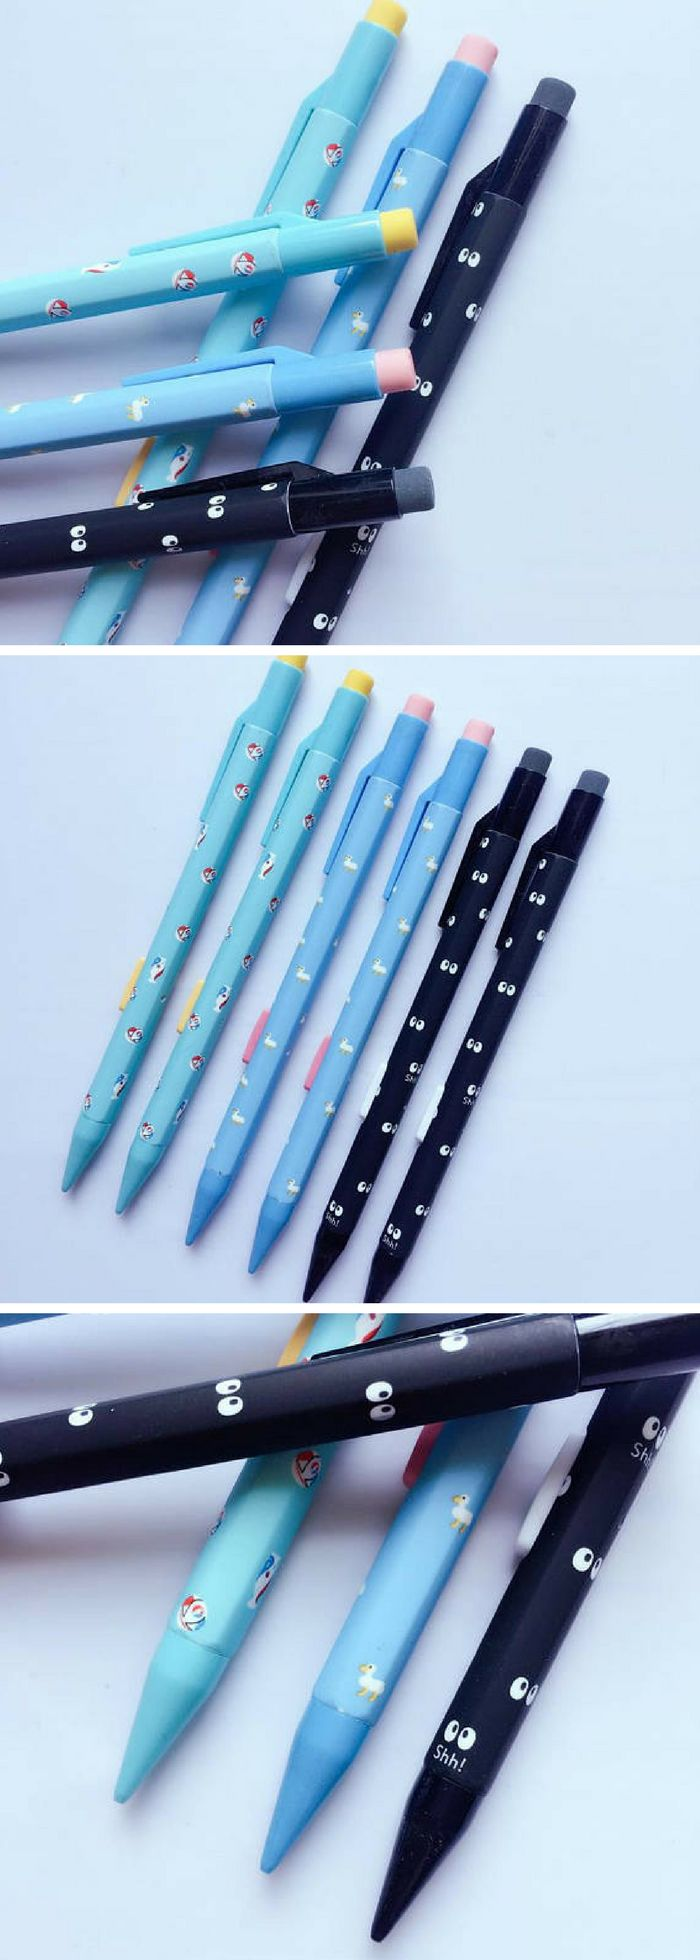 Cute mechanical pencils! I love the black ones with the googly eyes, it reminds me of the dust ball things (soot sprites?) from Totoro! #ad #stationery #kawaii